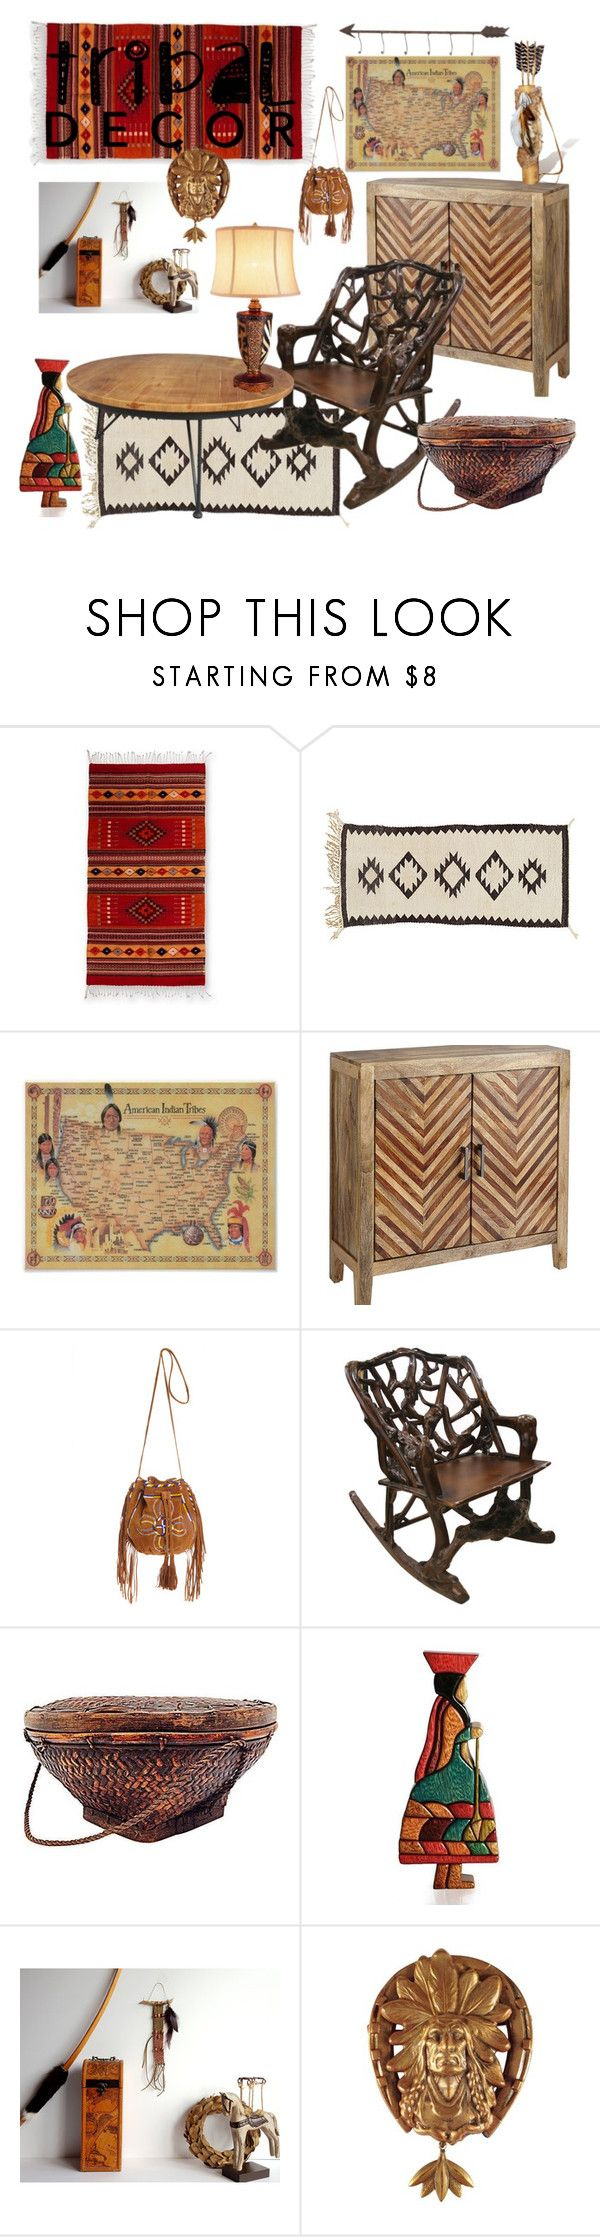 1000 Ideas About Native American Decor On Pinterest Tribal Decor Decorative Items And